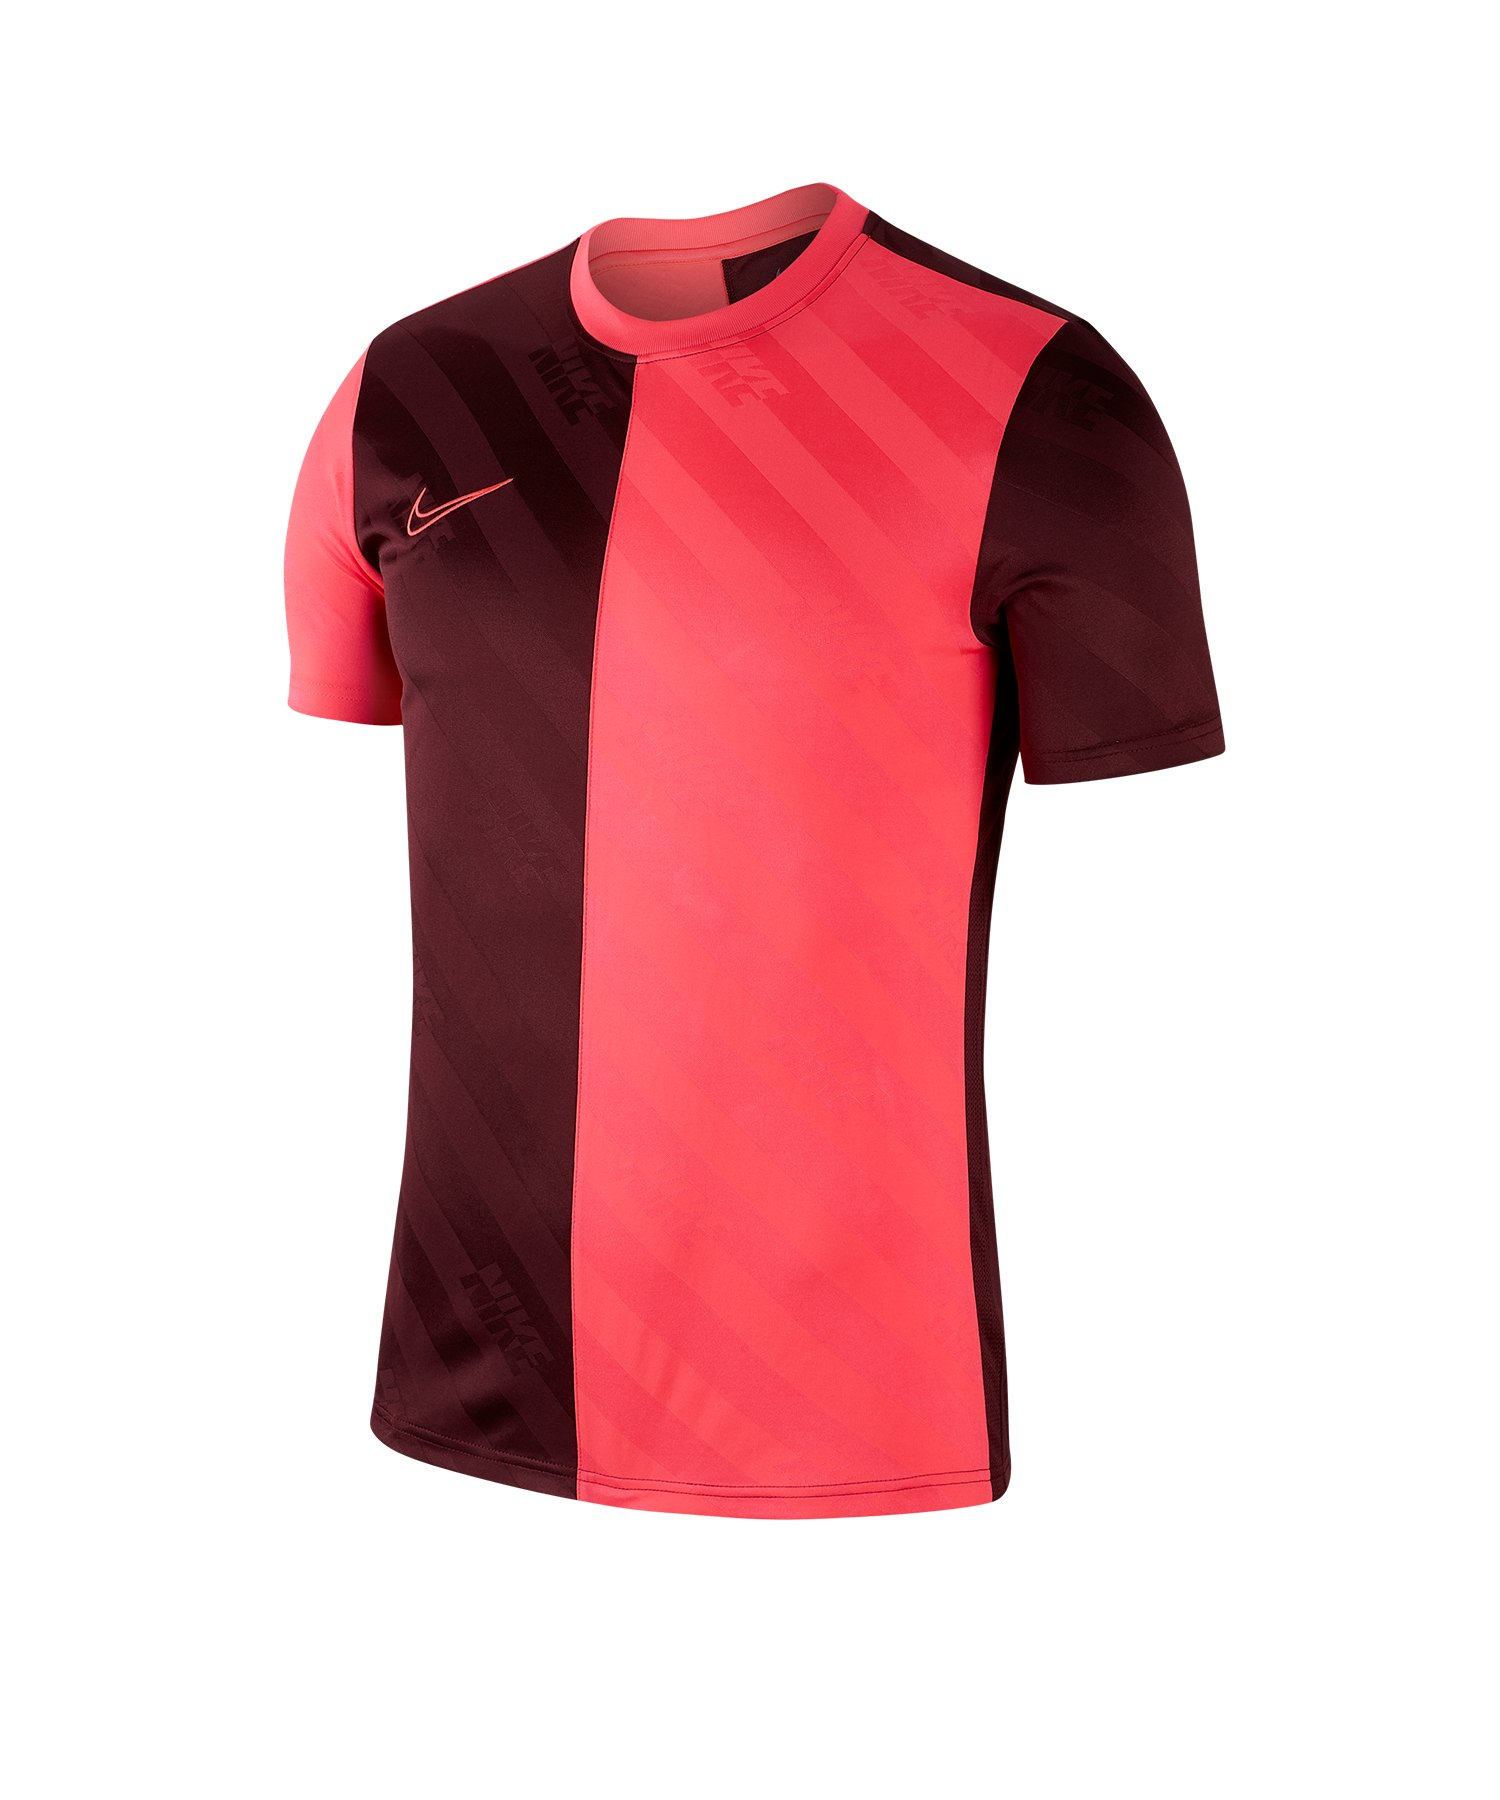 Nike Dri-FIT Academy Training Shirt Rot F681 - rot